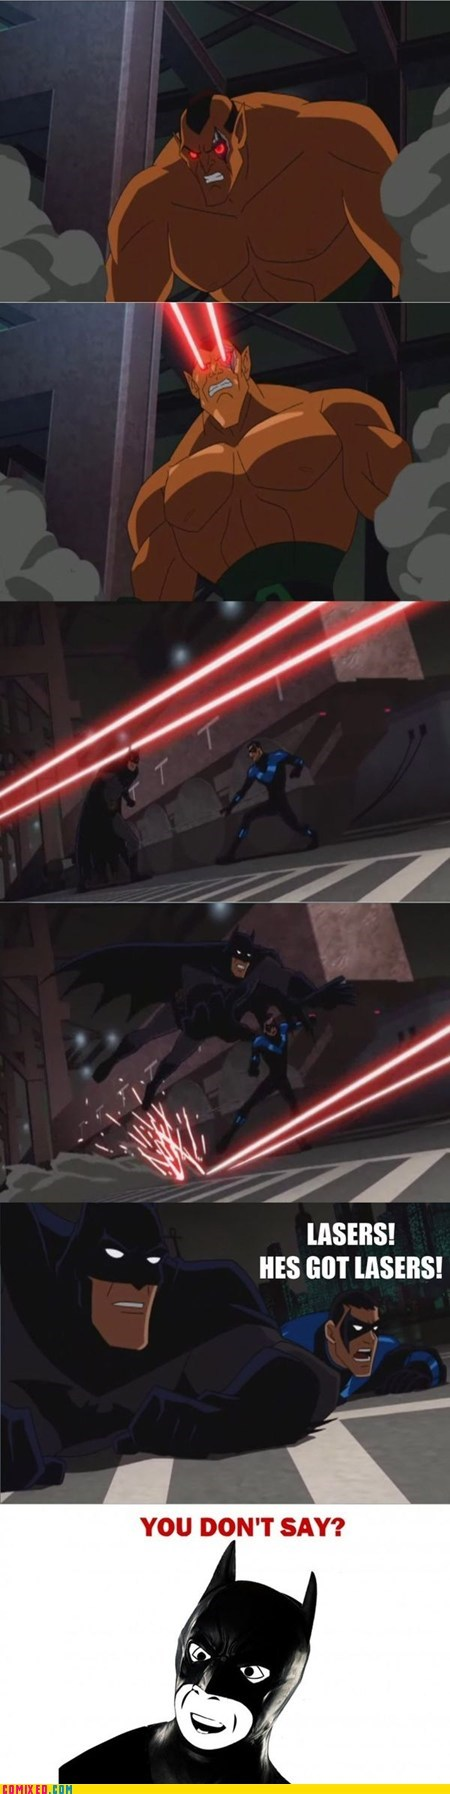 Nightwing the Obvious